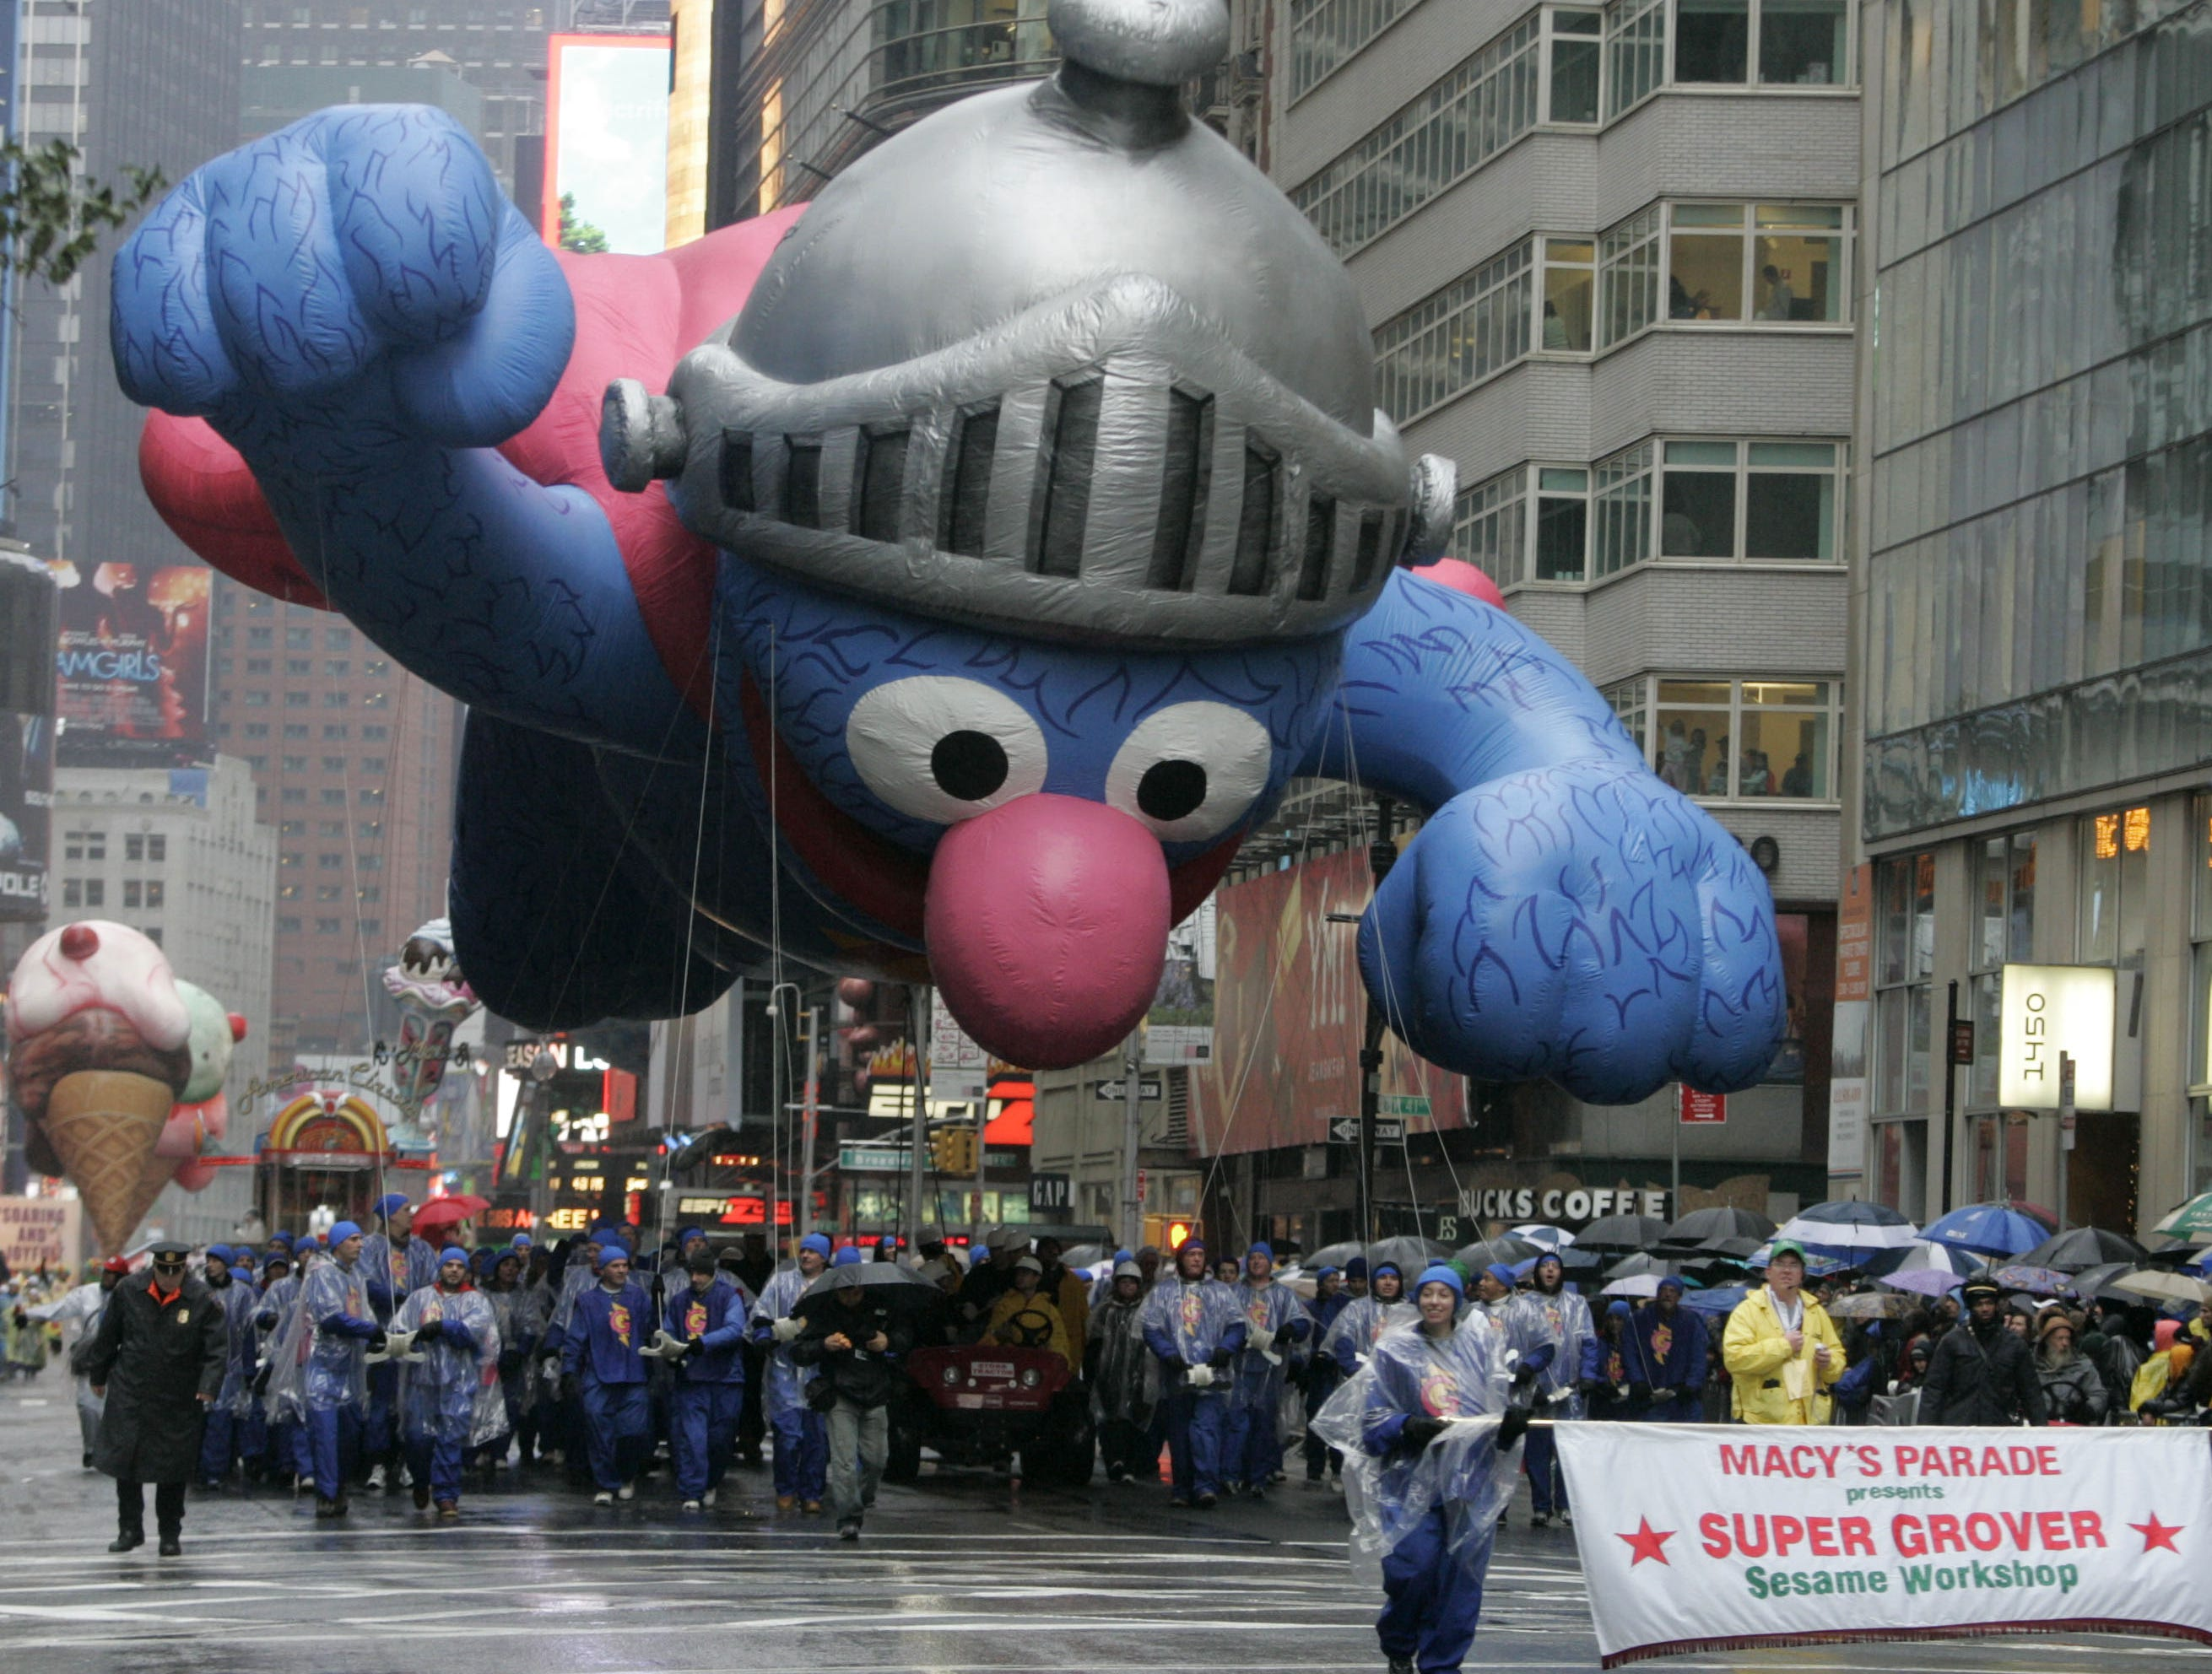 The Super Grover balloon moves down Seventh Ave. during the Macy's Thanksgiving Day parade Thursday, Nov. 23, 2006 in New York. Officials waited until right before the 9 a.m. start to decide whether it was safe for the event's famous balloons to float through Midtown. (AP Photo/Frank Franklin II)